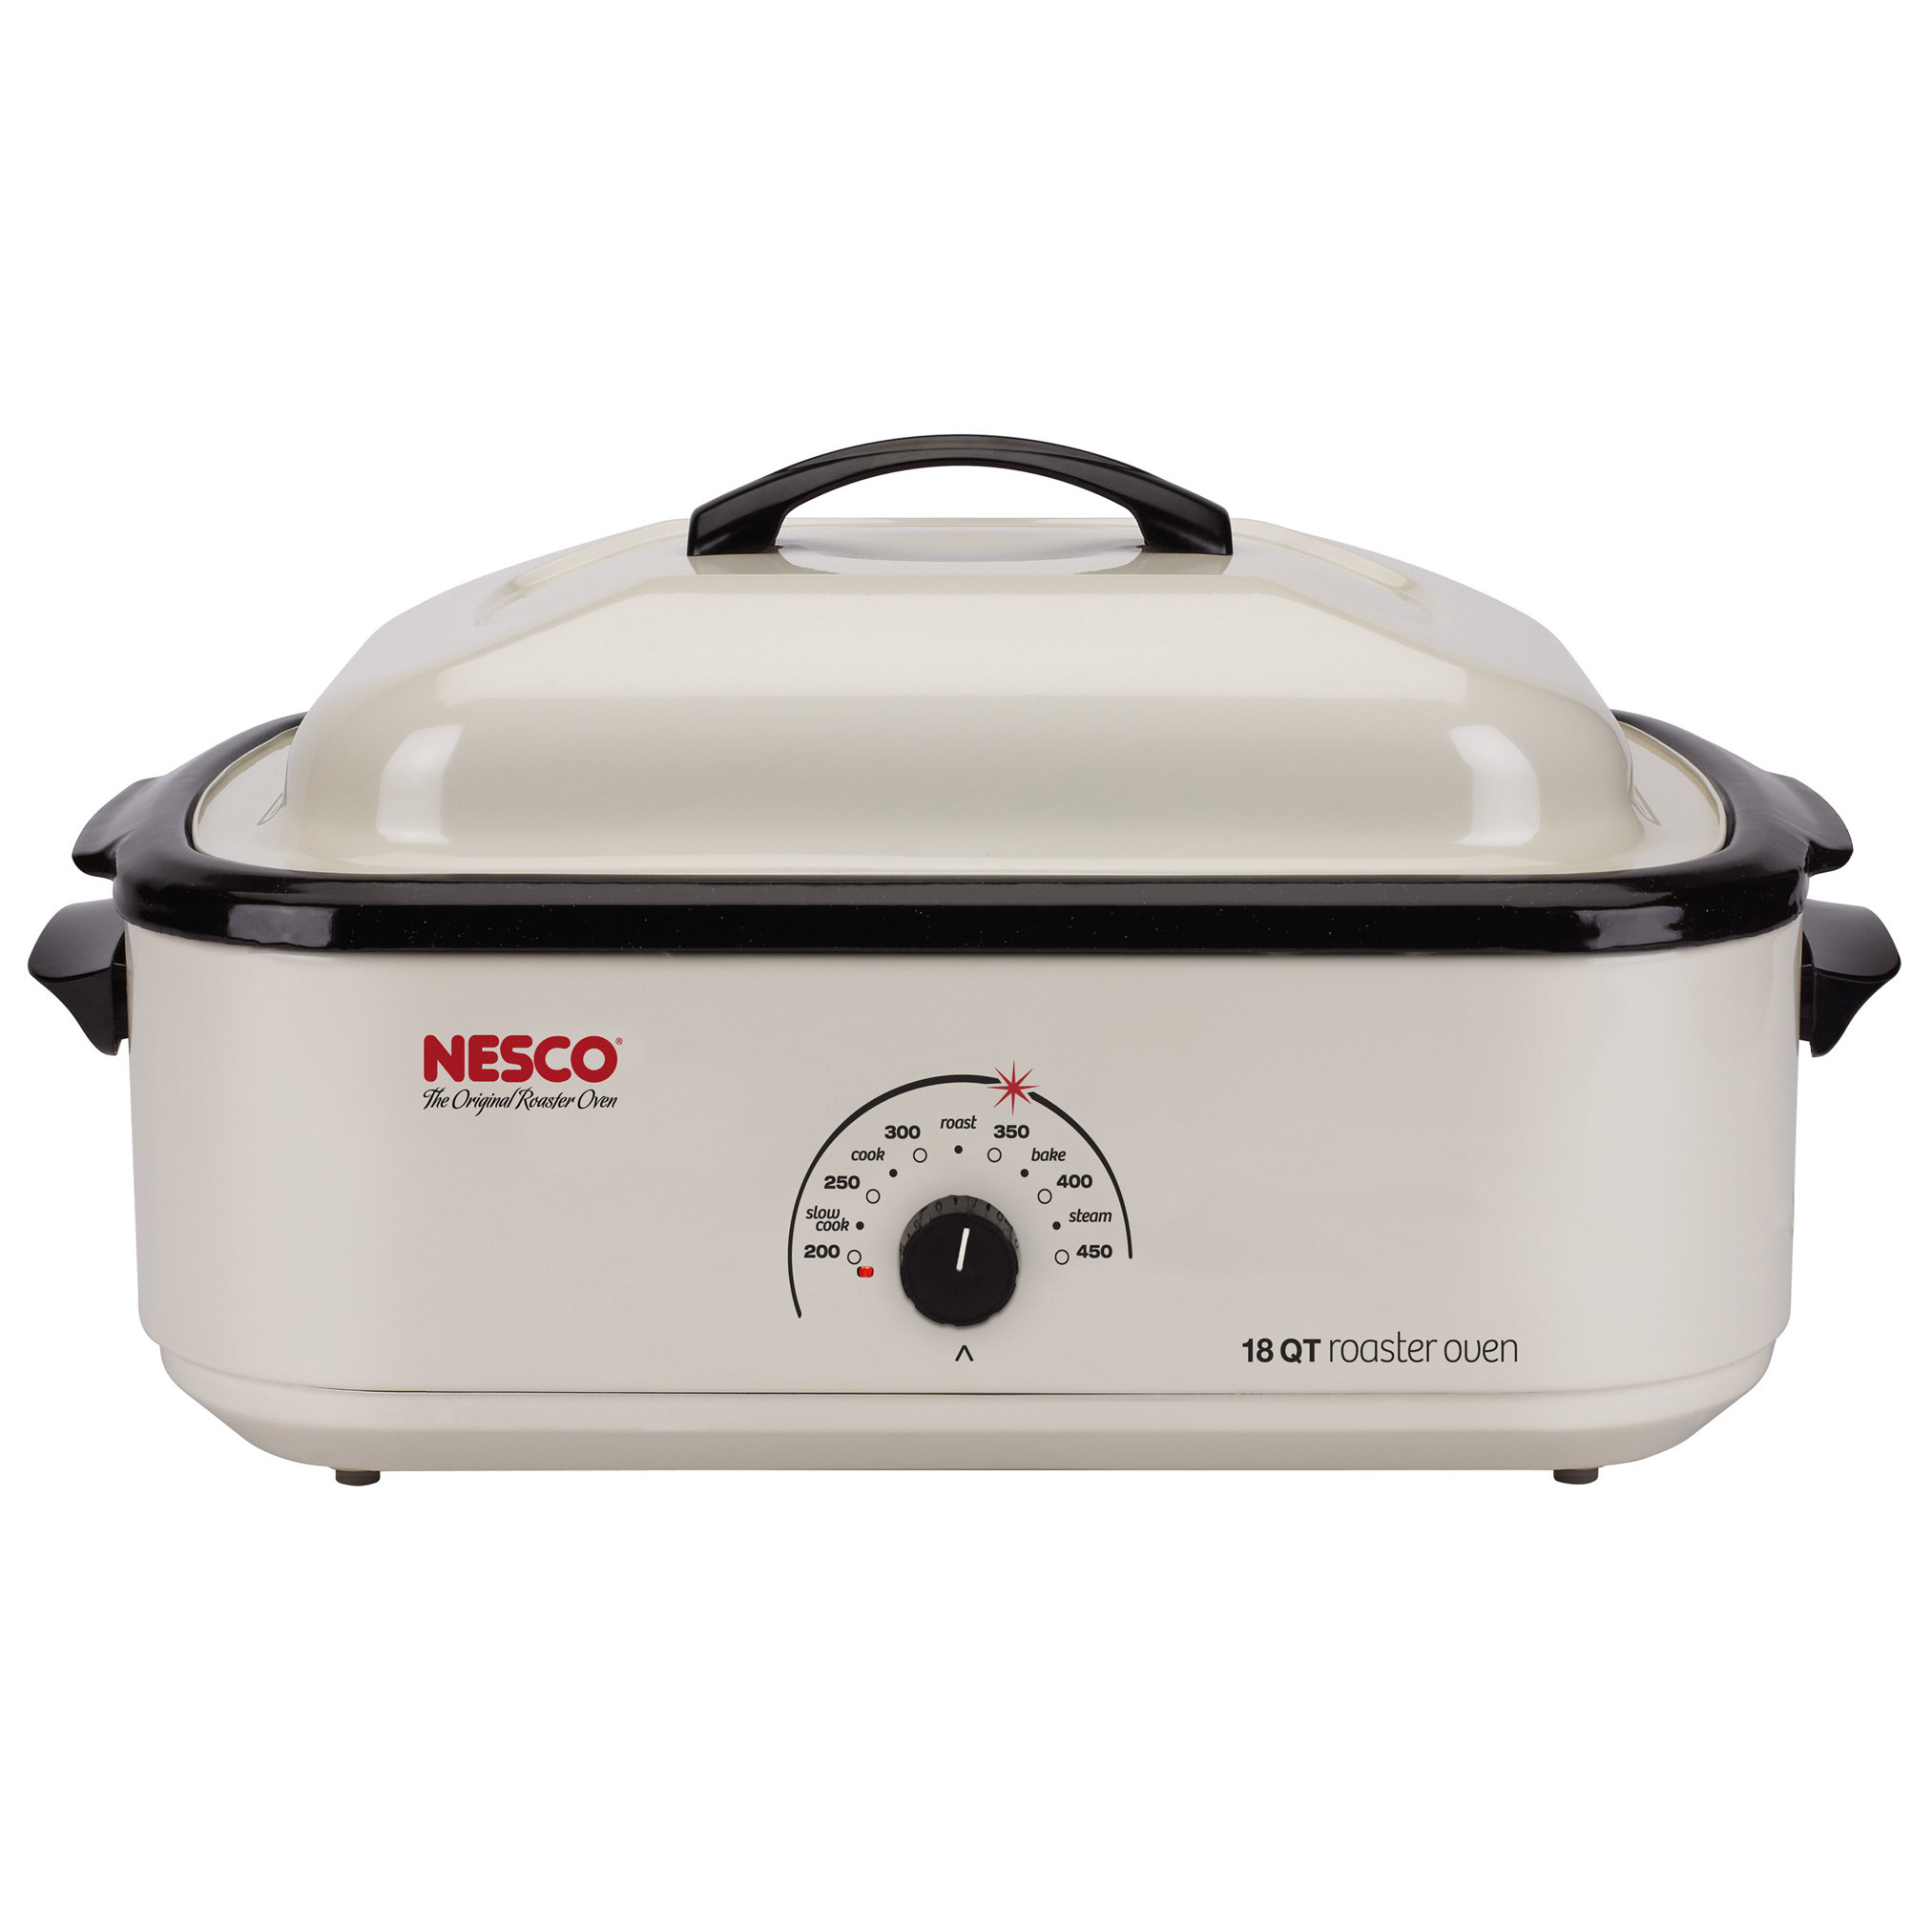 Nesco 4818-14 18 Quart Ivory Classic Roaster Oven by The Metal Ware Corporation